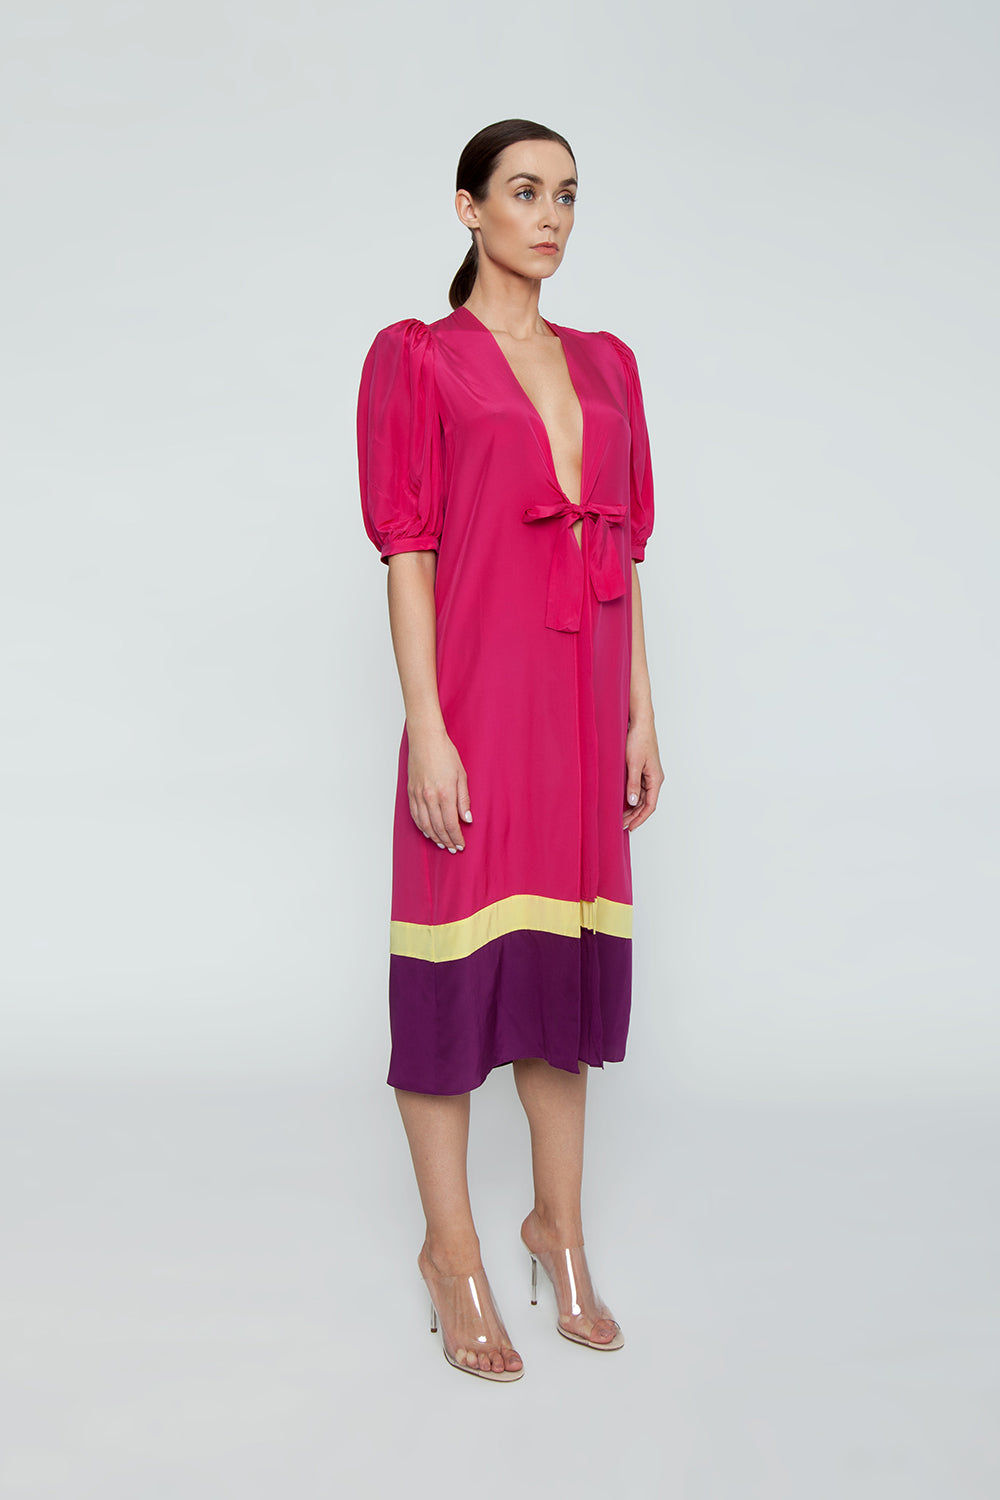 ADRIANA DEGREAS Silk Crepe De Chine Tricolor Midi Robe - Hot Pink/Citronelle/Purple Cover Up | Hot Pink/Citronelle/Purple| Adriana Degreas Silk Crepe De Chine Tricolor Midi Robe - Hot Pink/Citronelle/Purple. Features: Features:  Lightweight silk robe Designed for a cool, breezy feel Midi silk robe with long sleeve and gathered cuffs Waist tie to define the silhouette Unlined Main: 100% silk. Side View